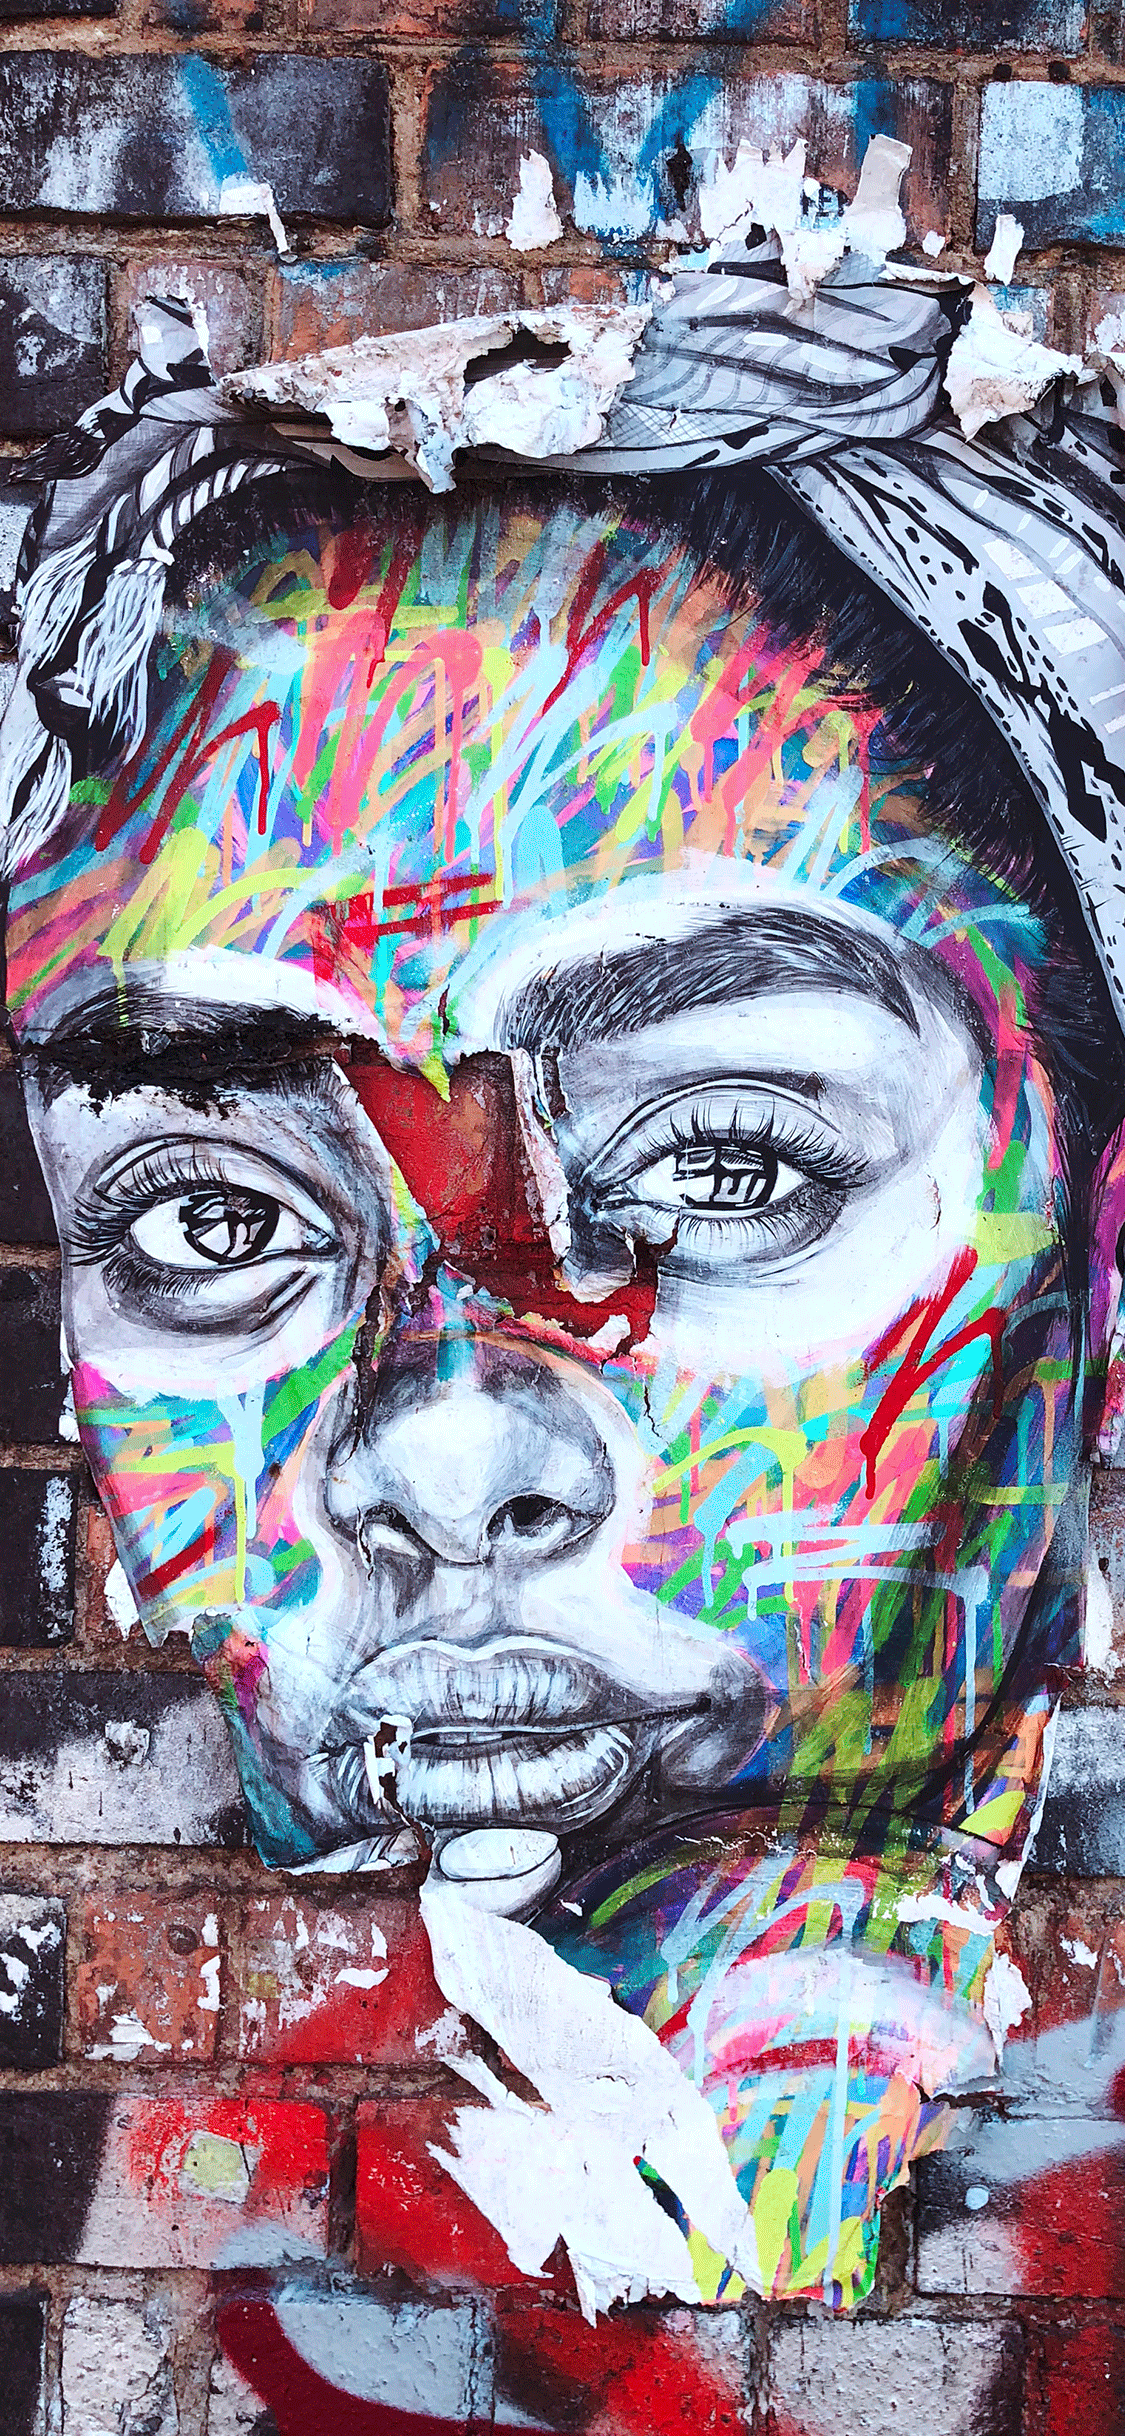 iPhone wallpaper graffiti woman Fonds d'écran iPhone du 07/09/2018